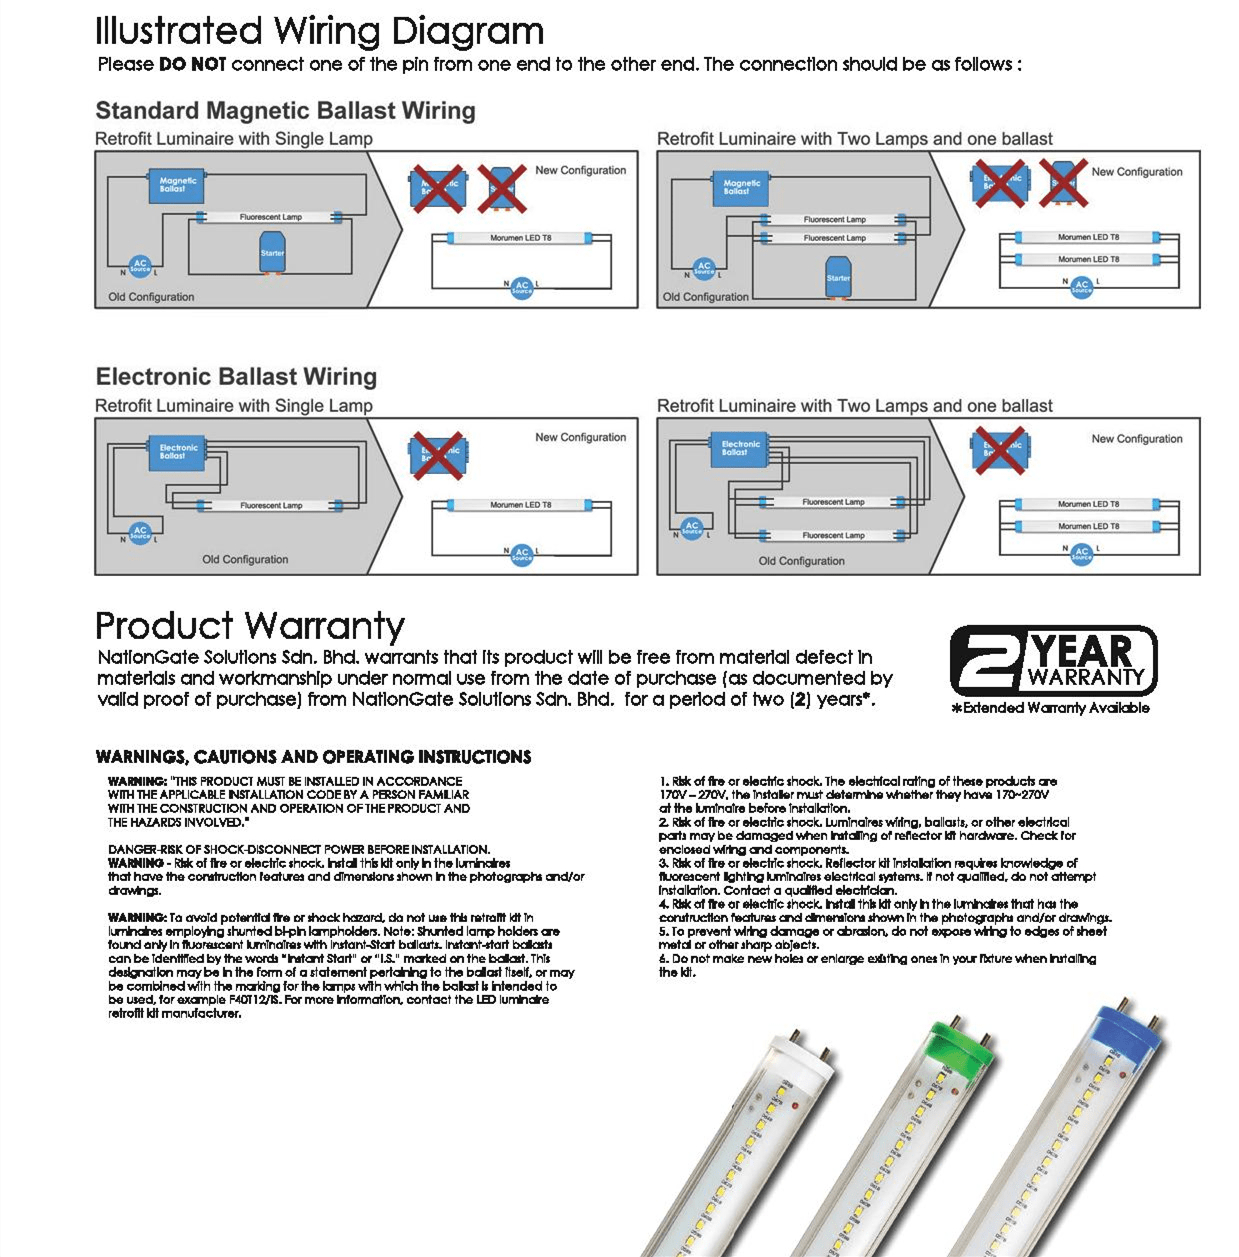 Modern Led Tube T8 Wiring Diagram Picture Collection - Electrical ...